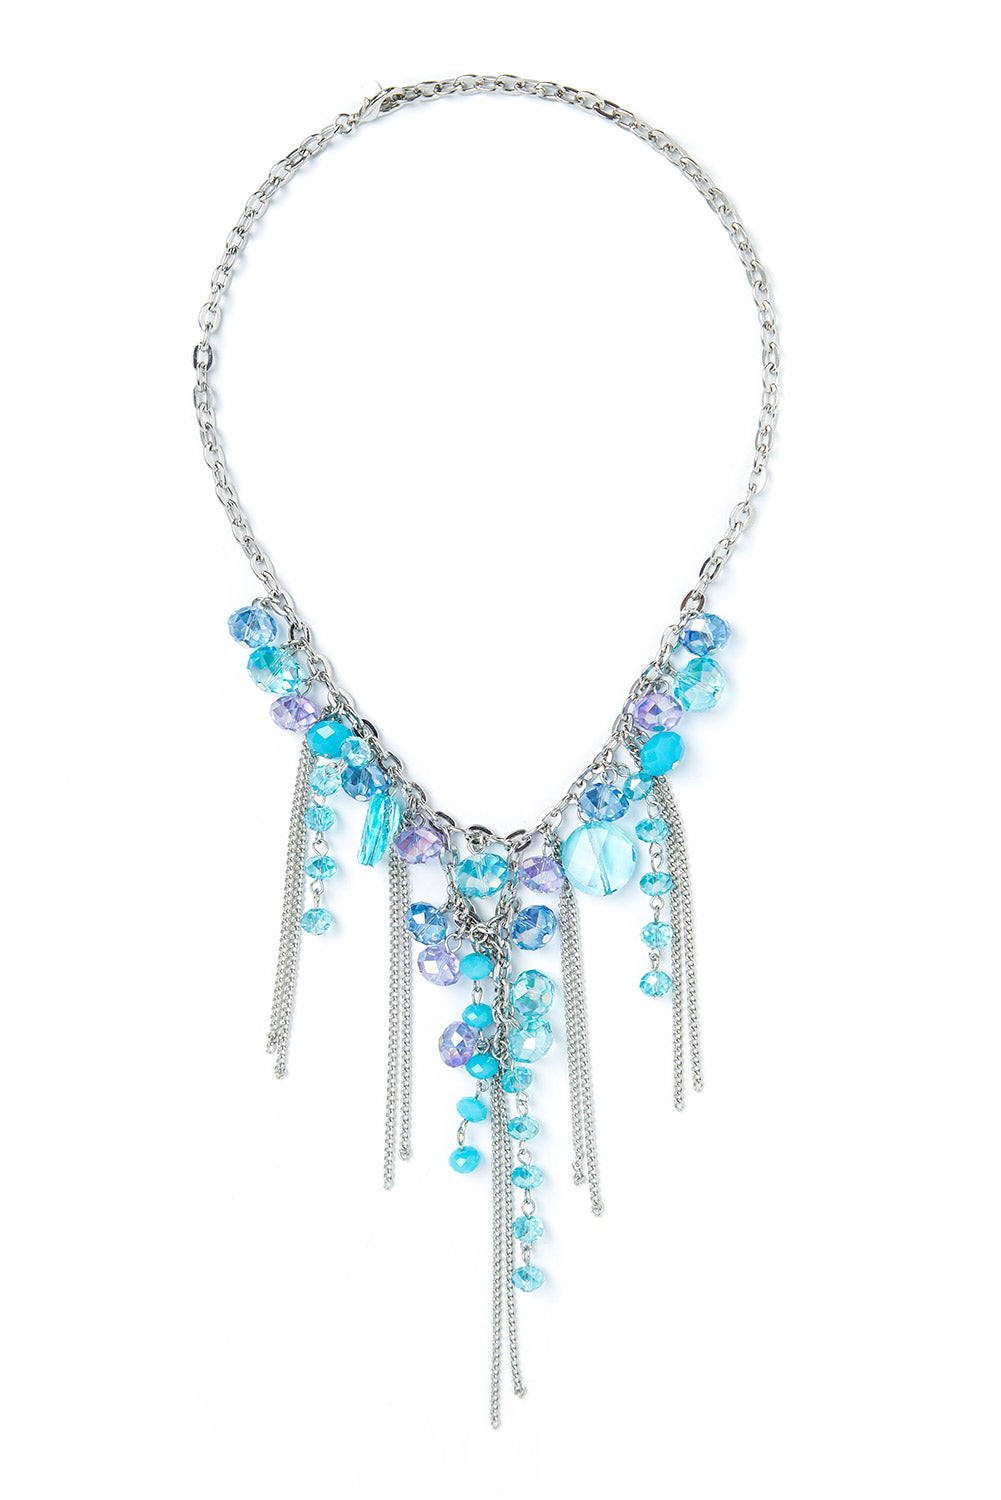 Type 2 Jellyfish Bloom Necklace